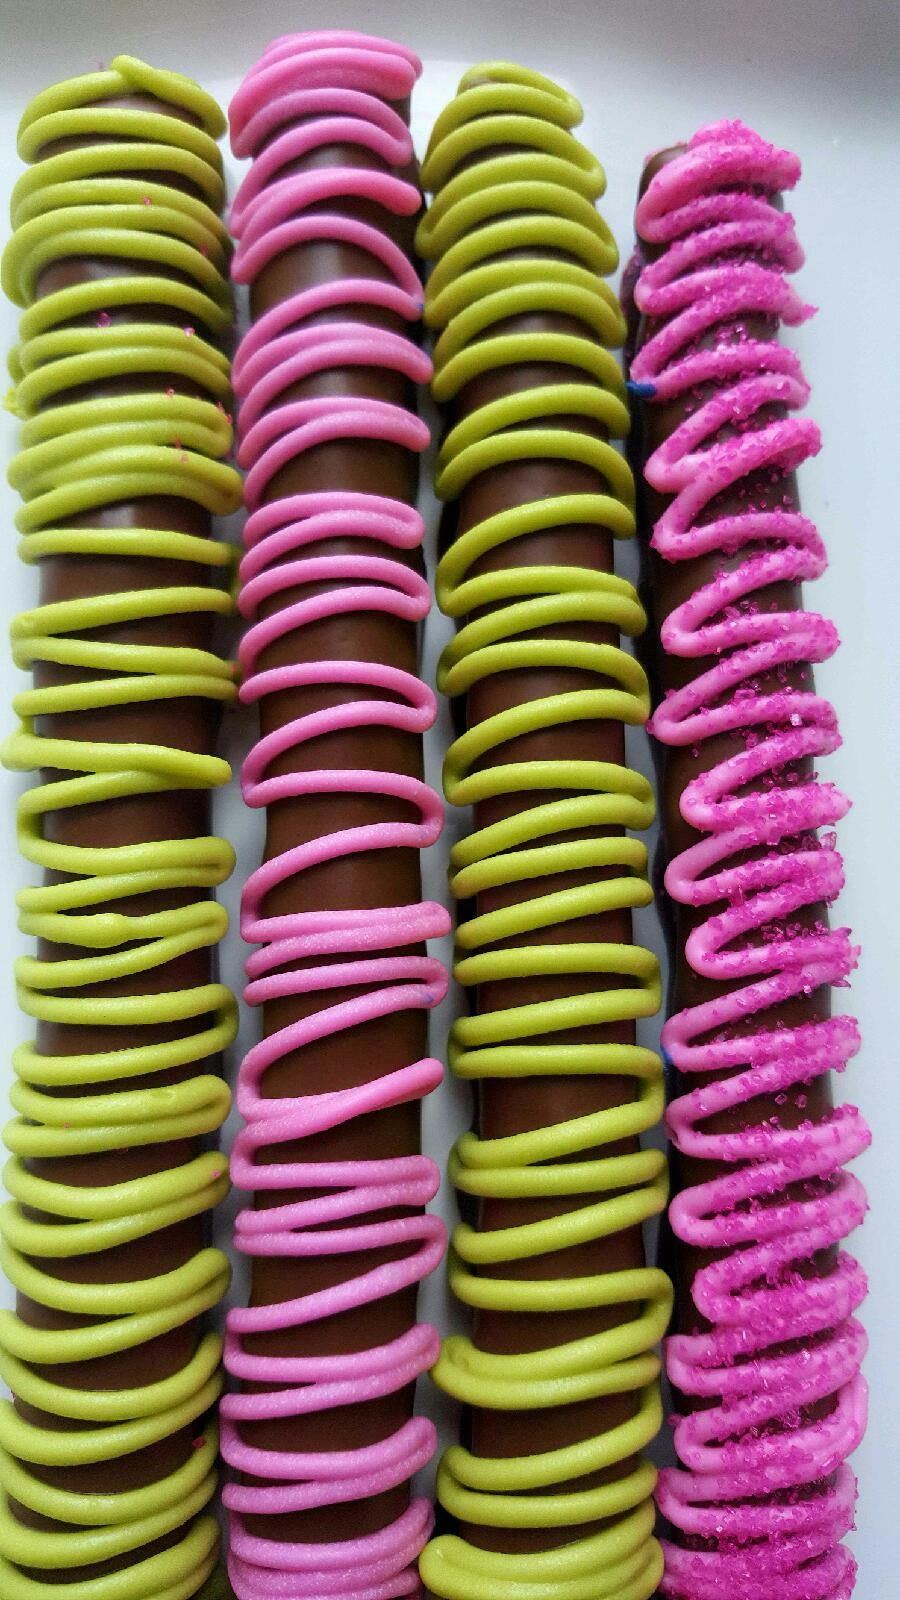 Gourmet Chocolate Covered Pretzels Baby Shower Its A Girl Princess Party Favors Boxed Gift Bridal Wedding Corporate Fundraiser Custom Orders